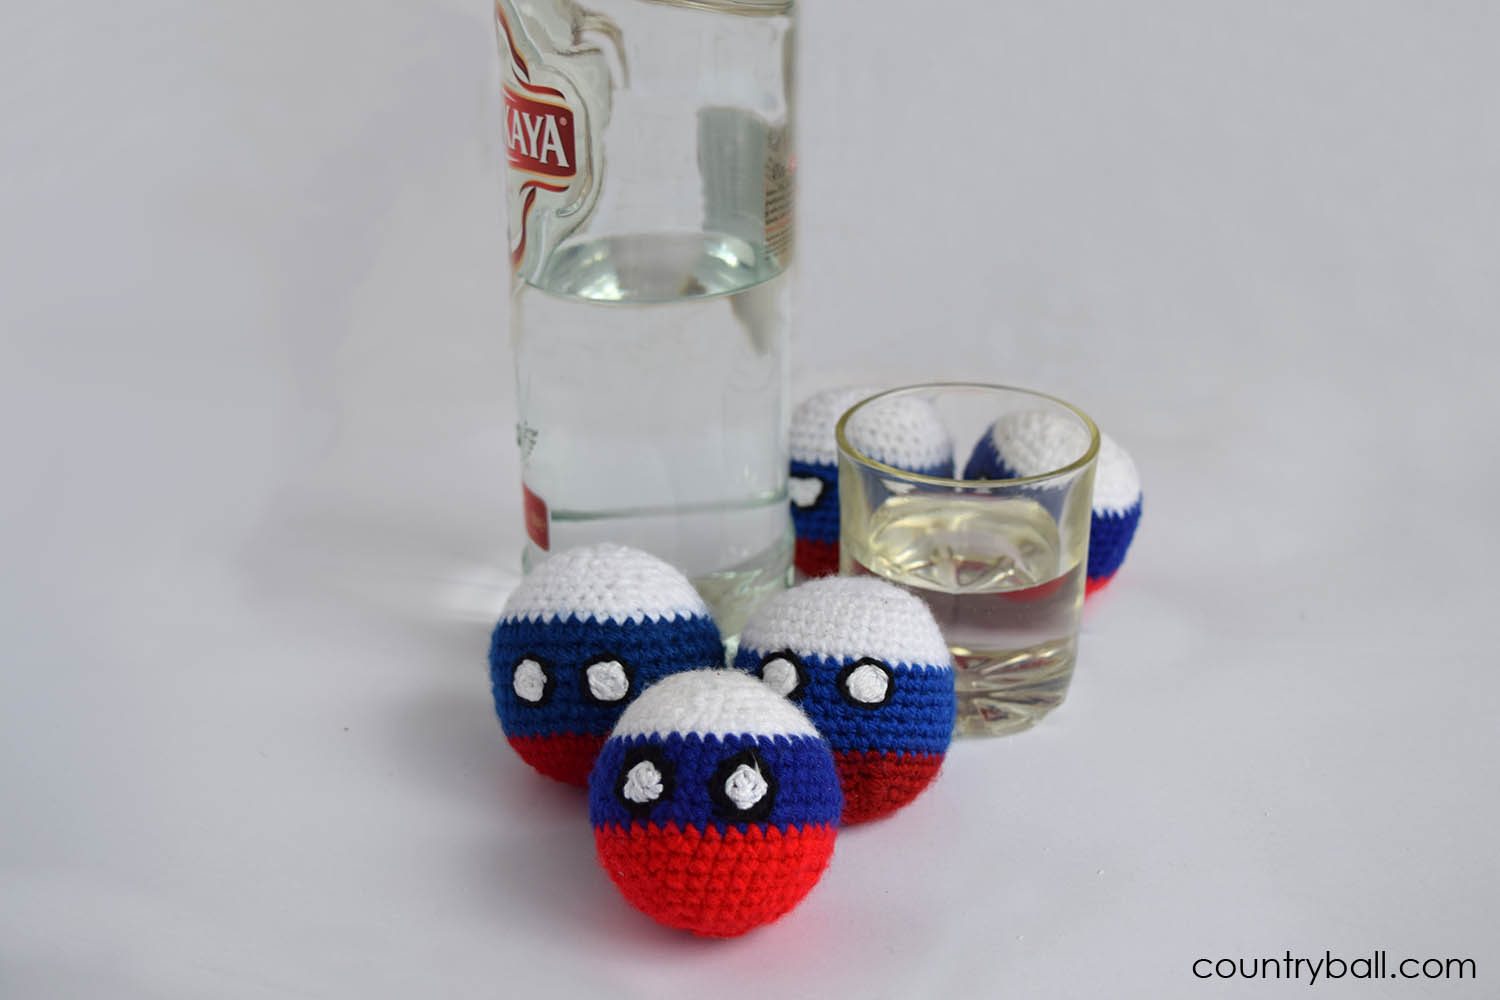 Russiaball and His Famous Vodka